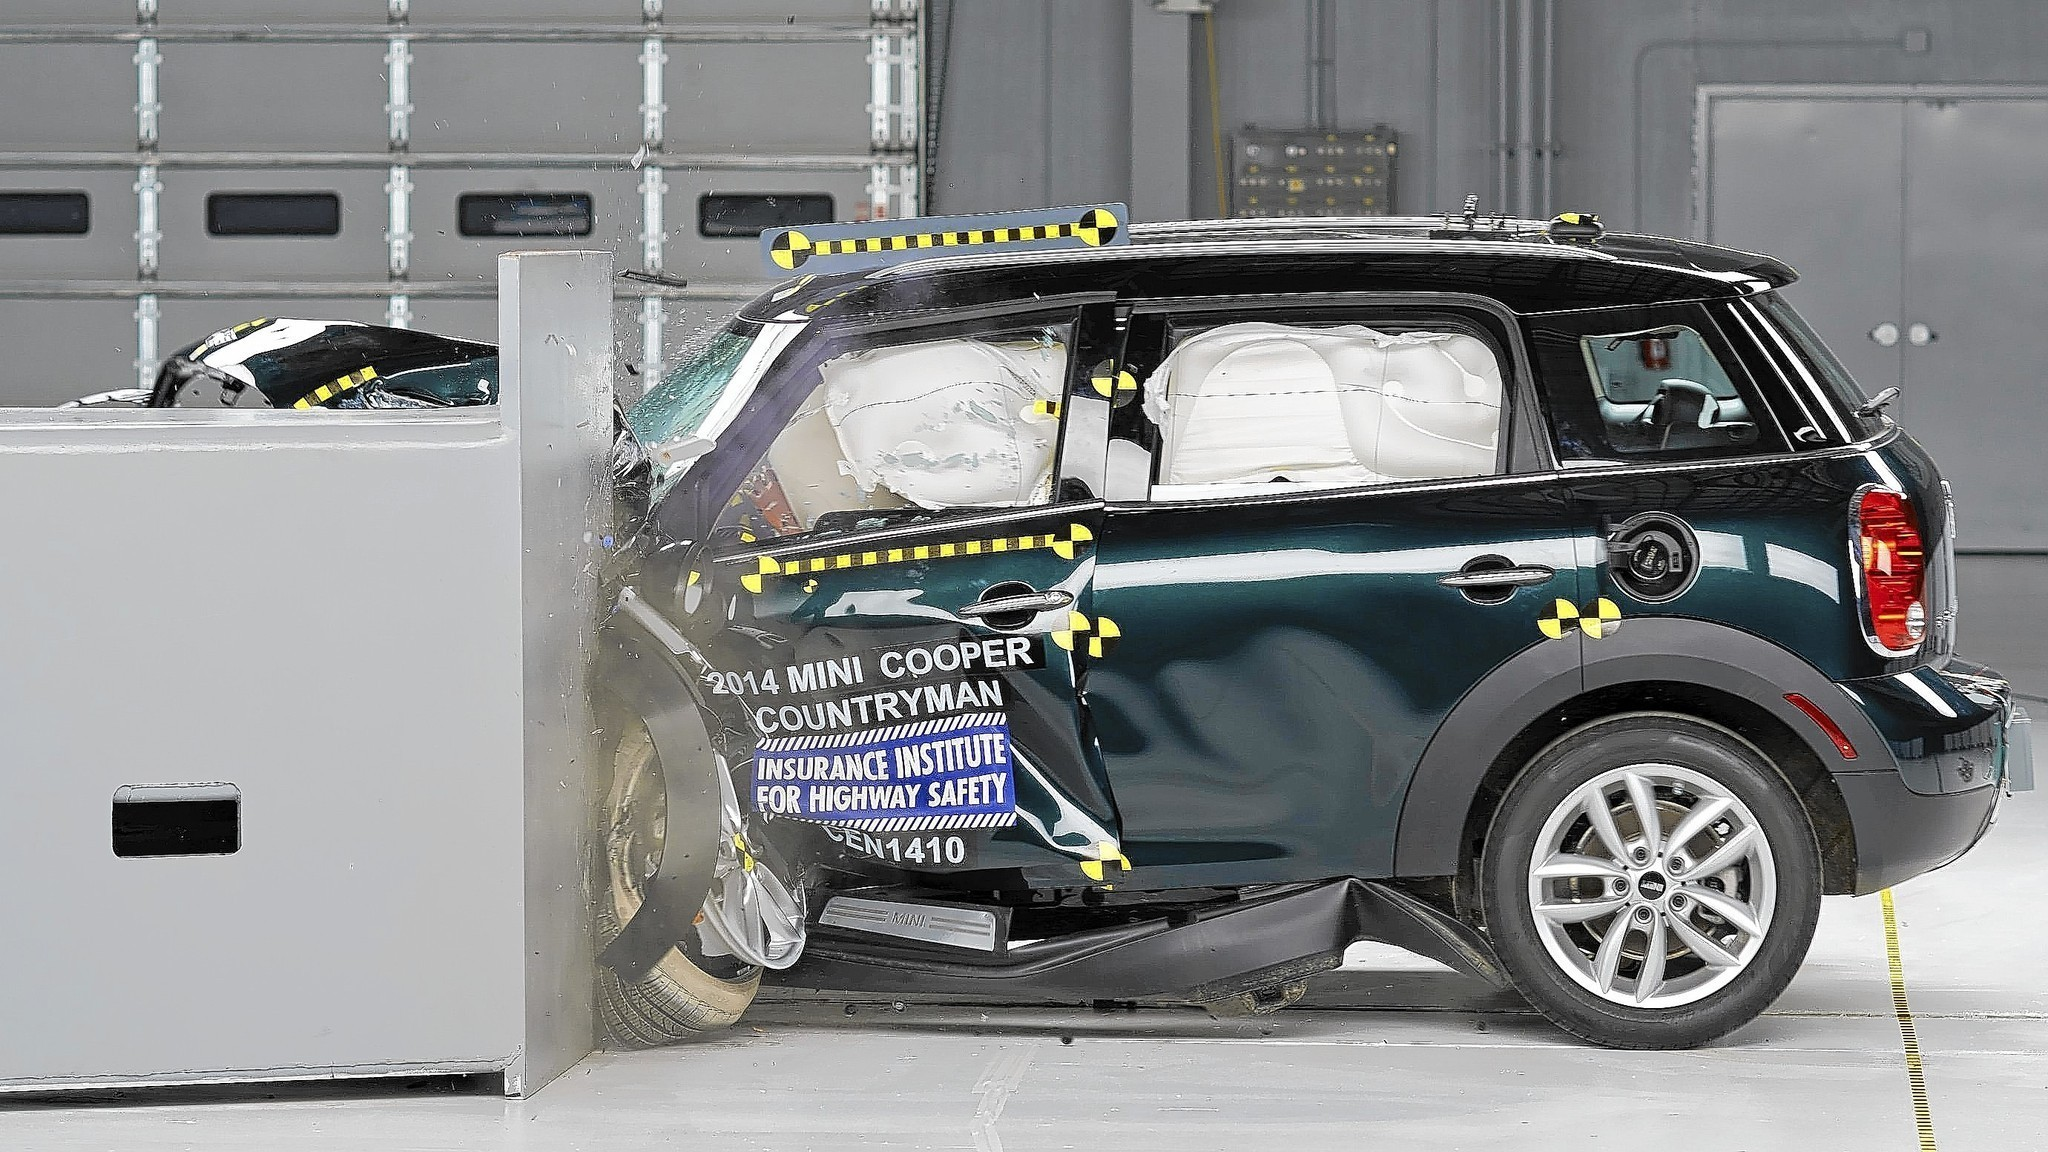 mini cooper countryman wins small car crash tests nissan leaf fails la times. Black Bedroom Furniture Sets. Home Design Ideas